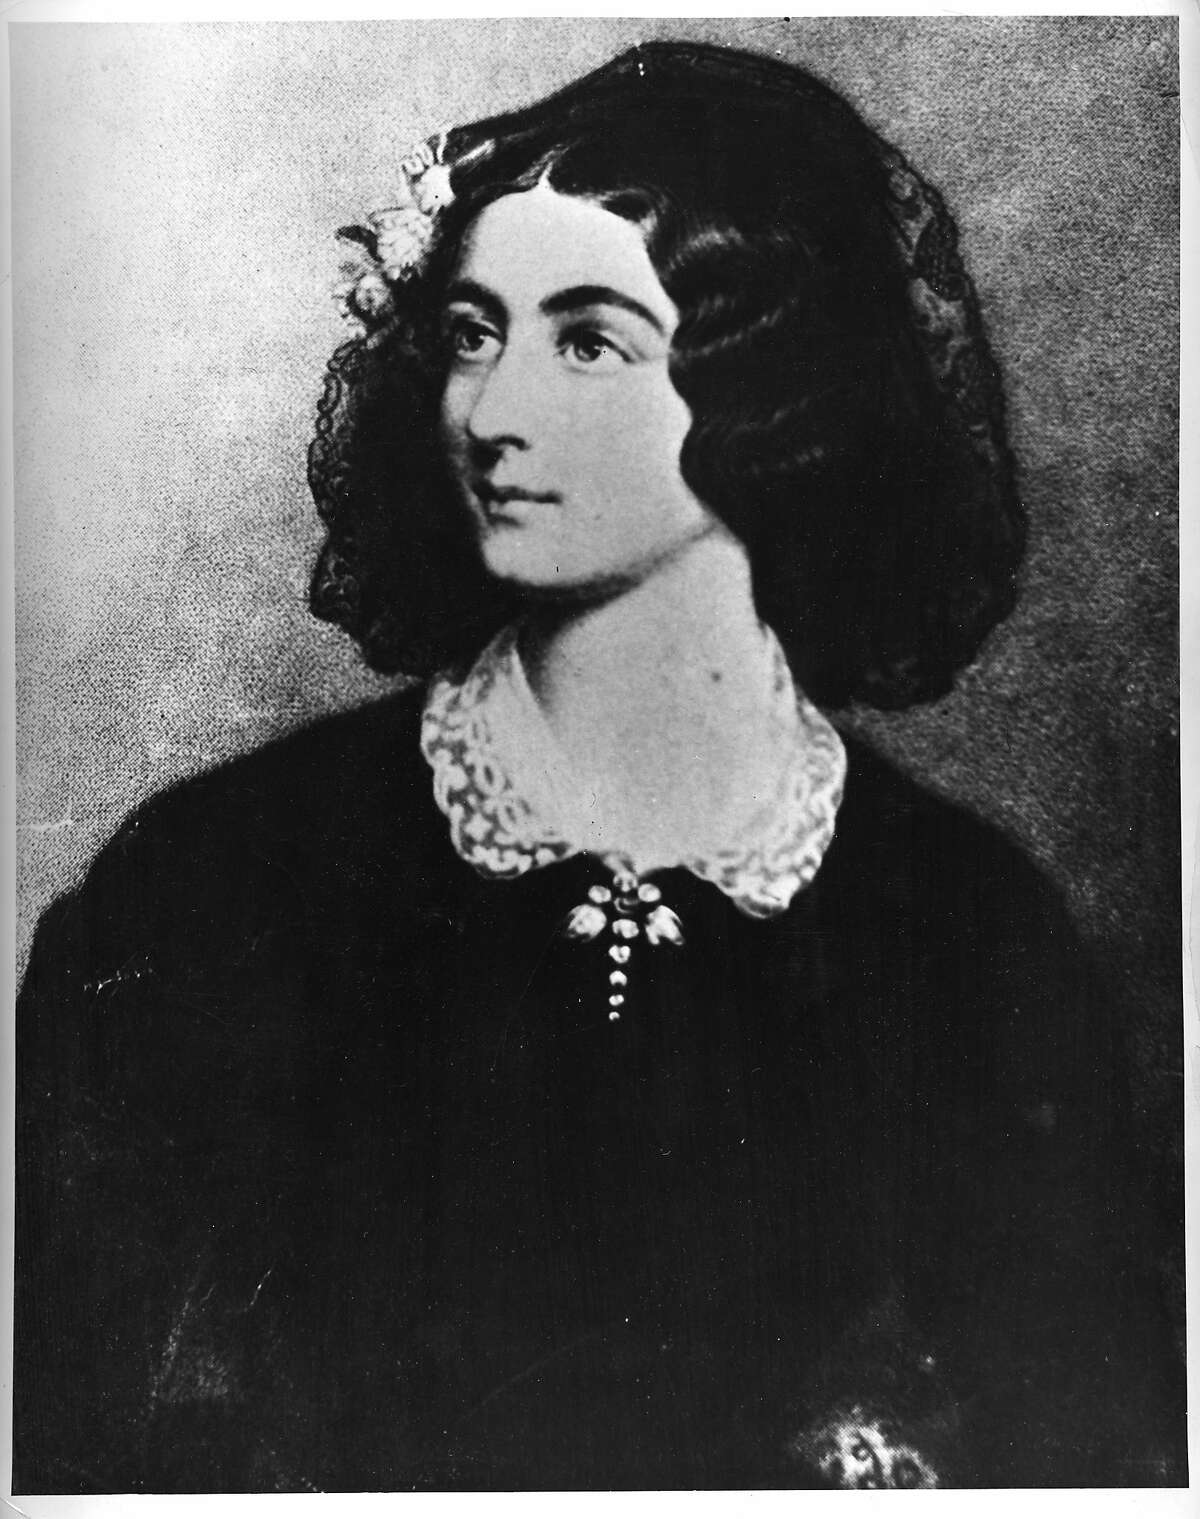 Lola Montez, as she appeared at the height of her popularity.